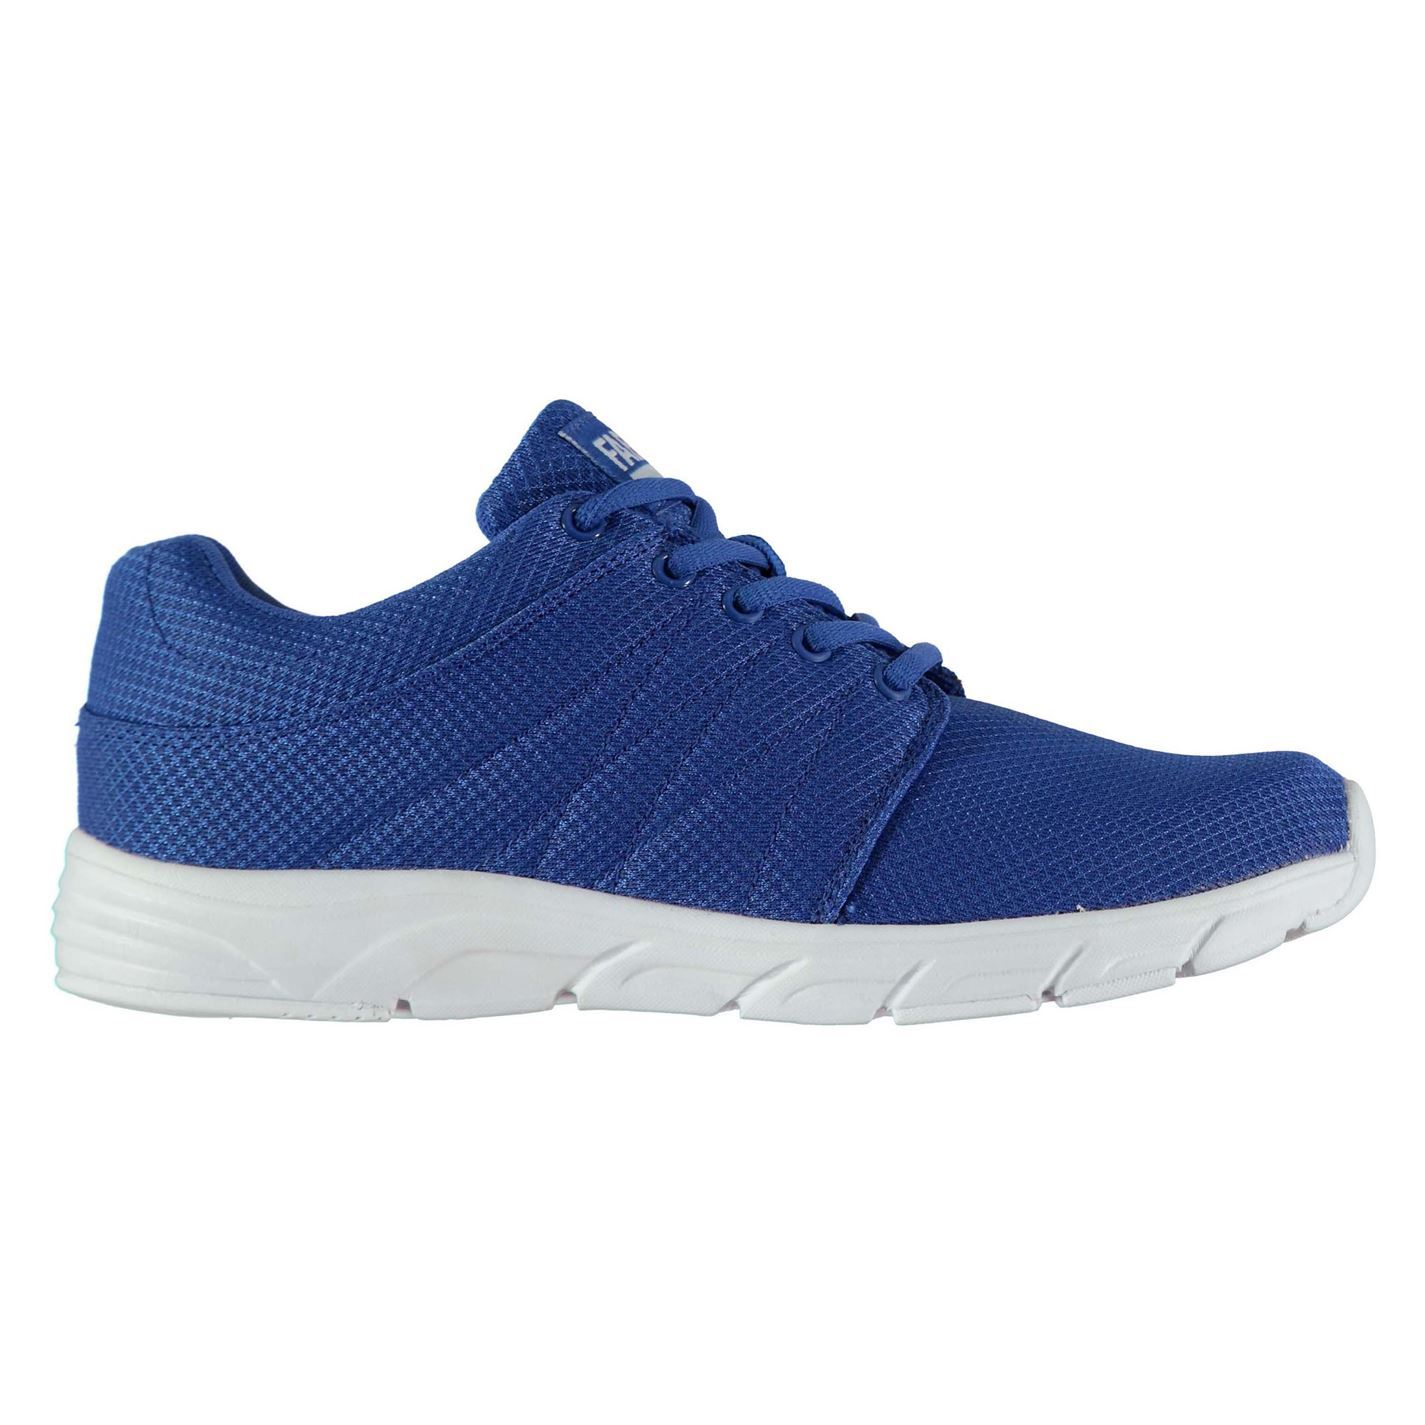 Fabric Reup Runner Trainers Mens Blue/White Sports Shoes Sneakers